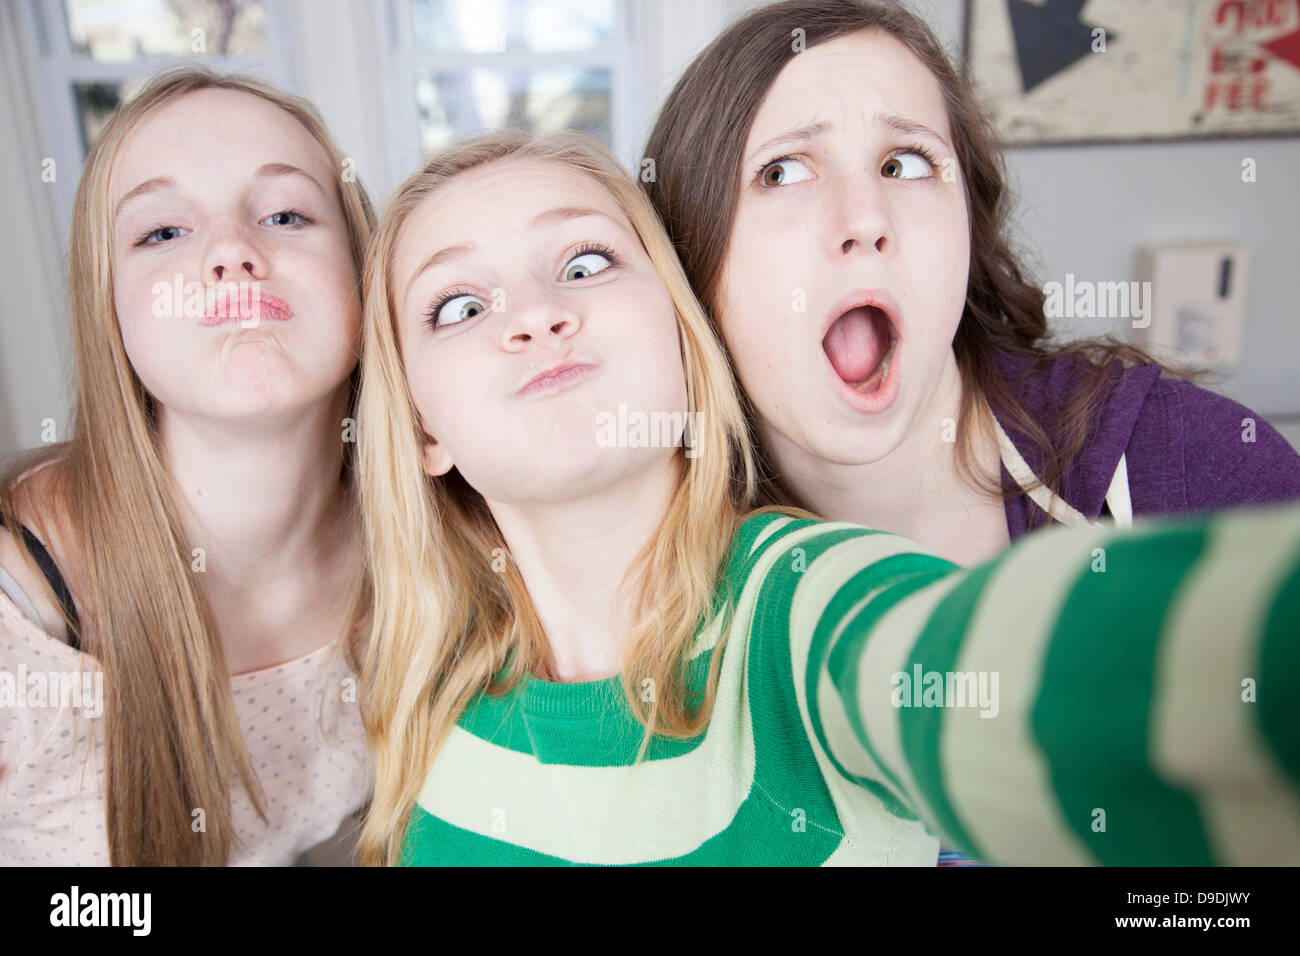 Les adolescents tirant funny faces Photo Stock